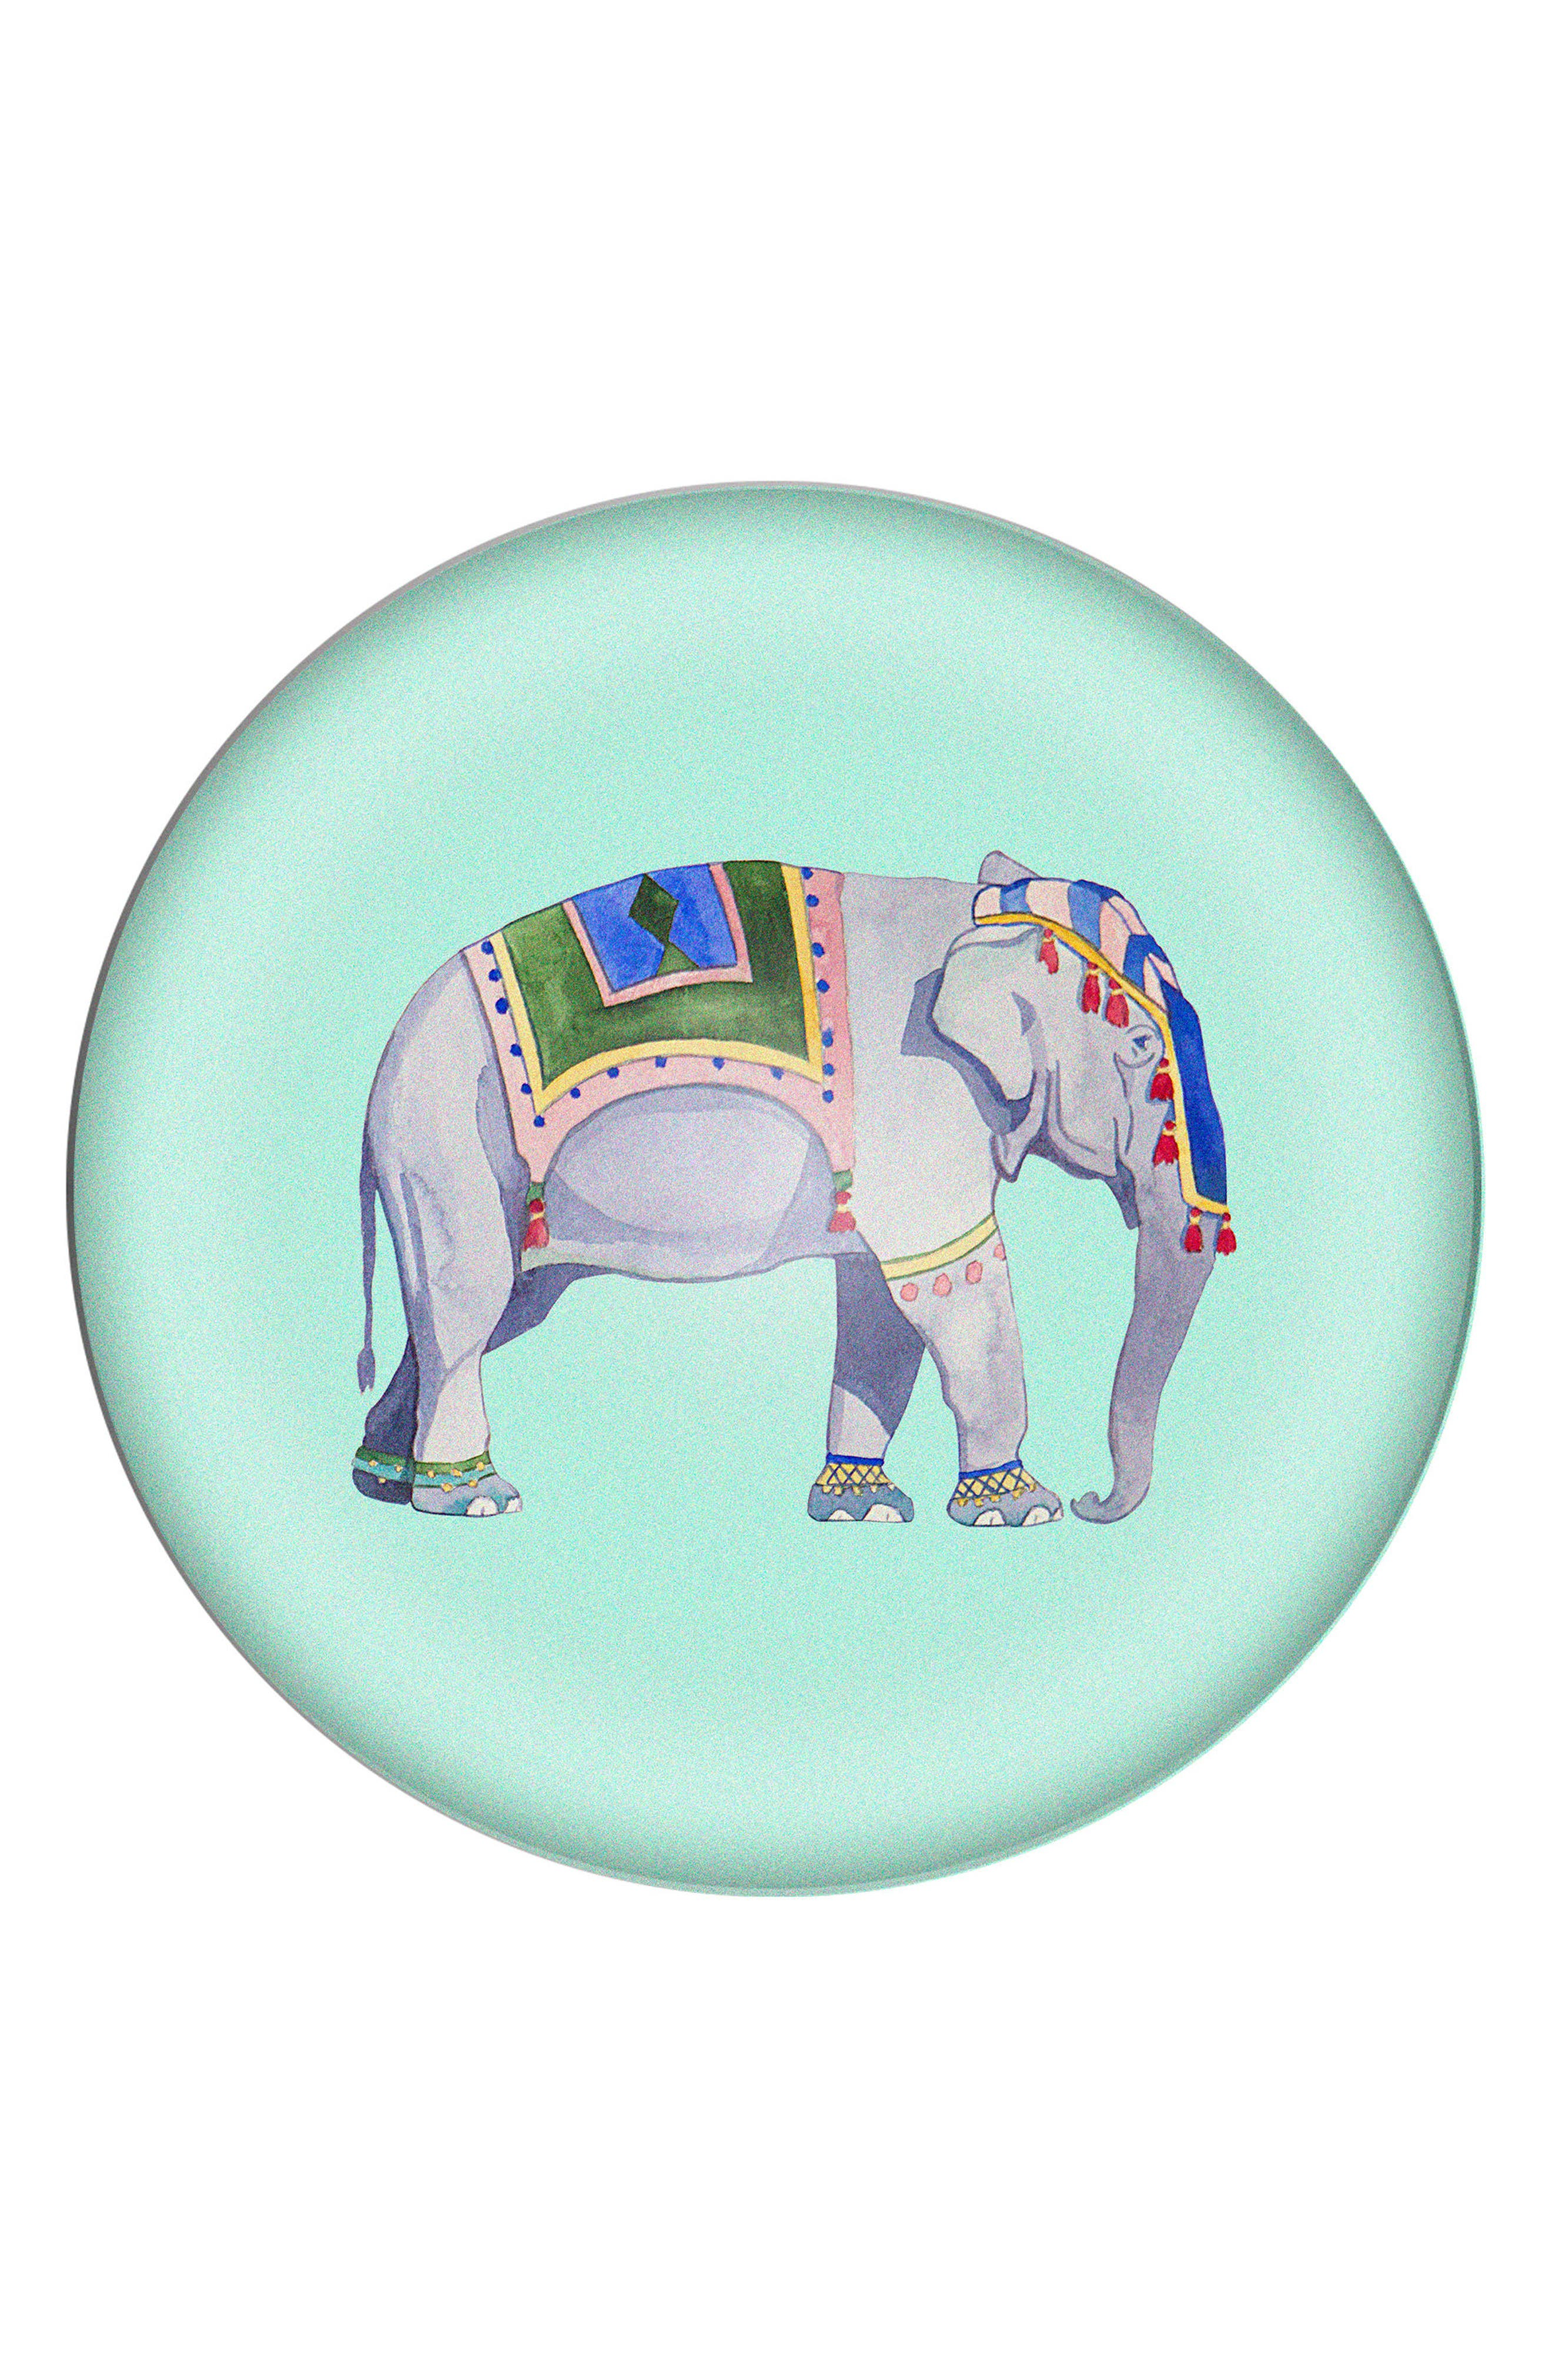 Elephant Domed Glass Paperweight,                             Main thumbnail 1, color,                             400